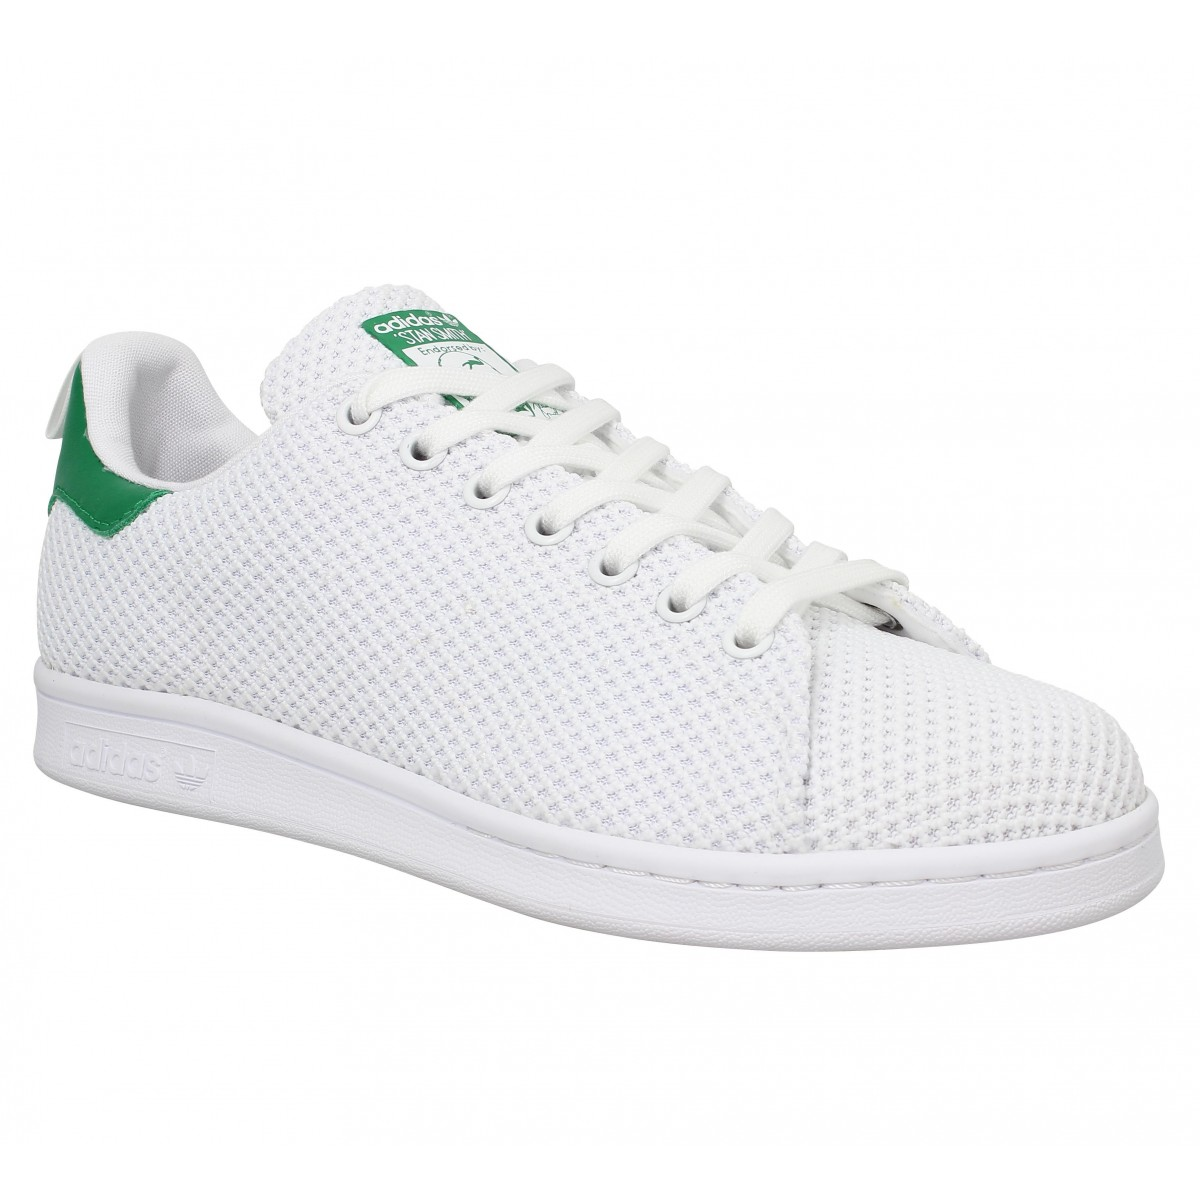 adidas stan smith toile blanc vert homme fanny chaussures. Black Bedroom Furniture Sets. Home Design Ideas